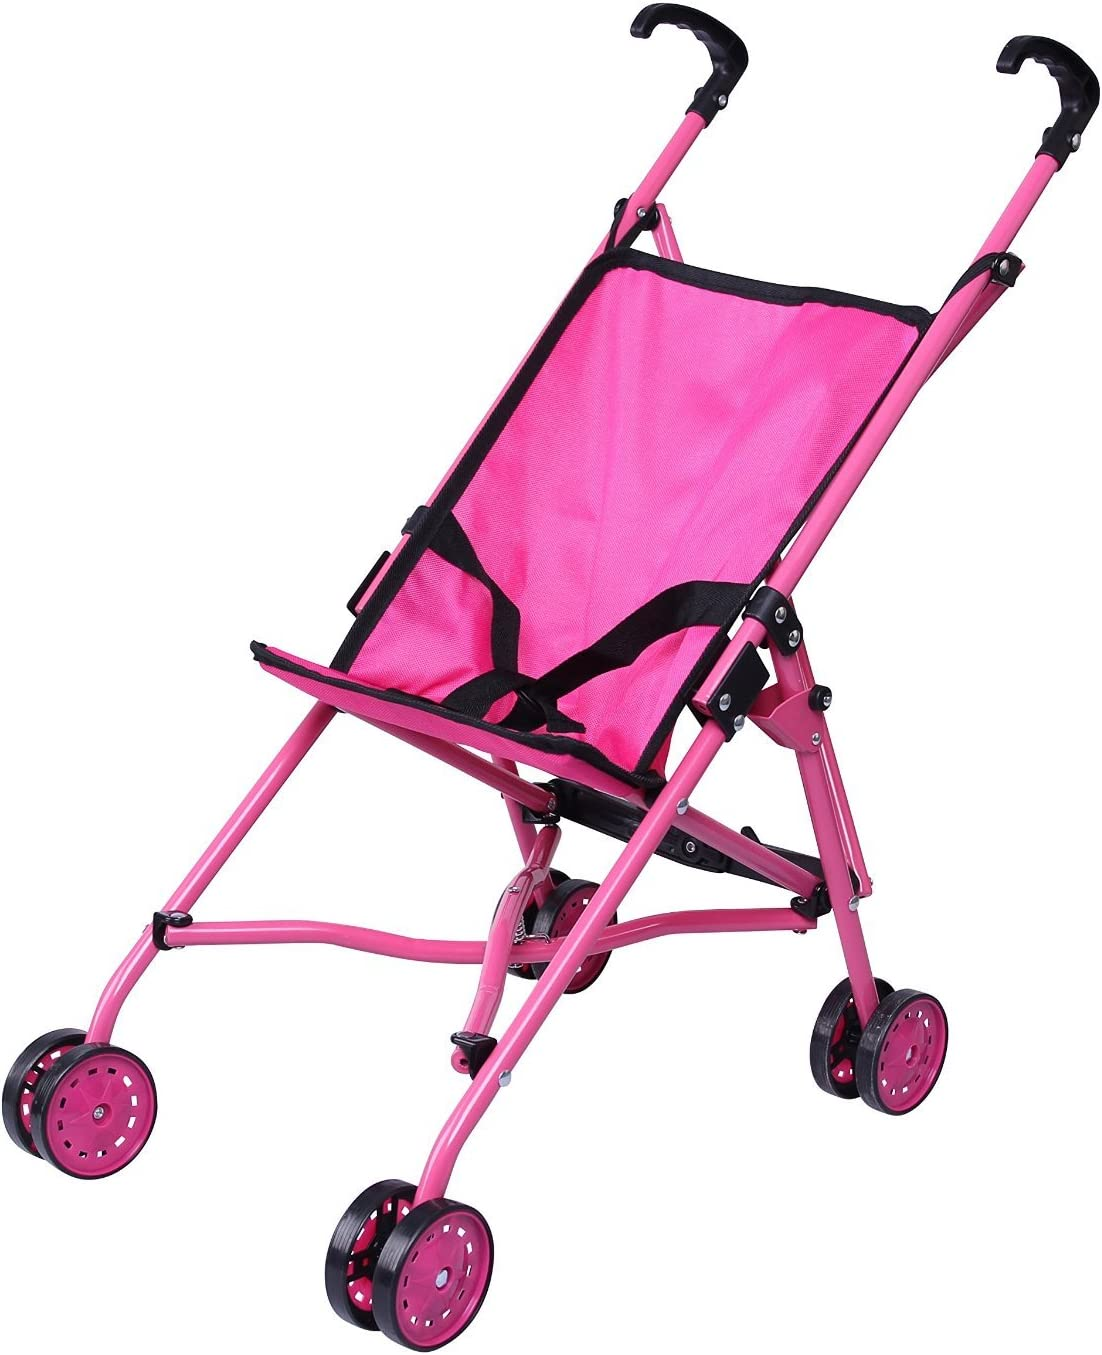 Top 10 Best Baby Doll Stroller (2020 Reviews & Buying Guide) 7